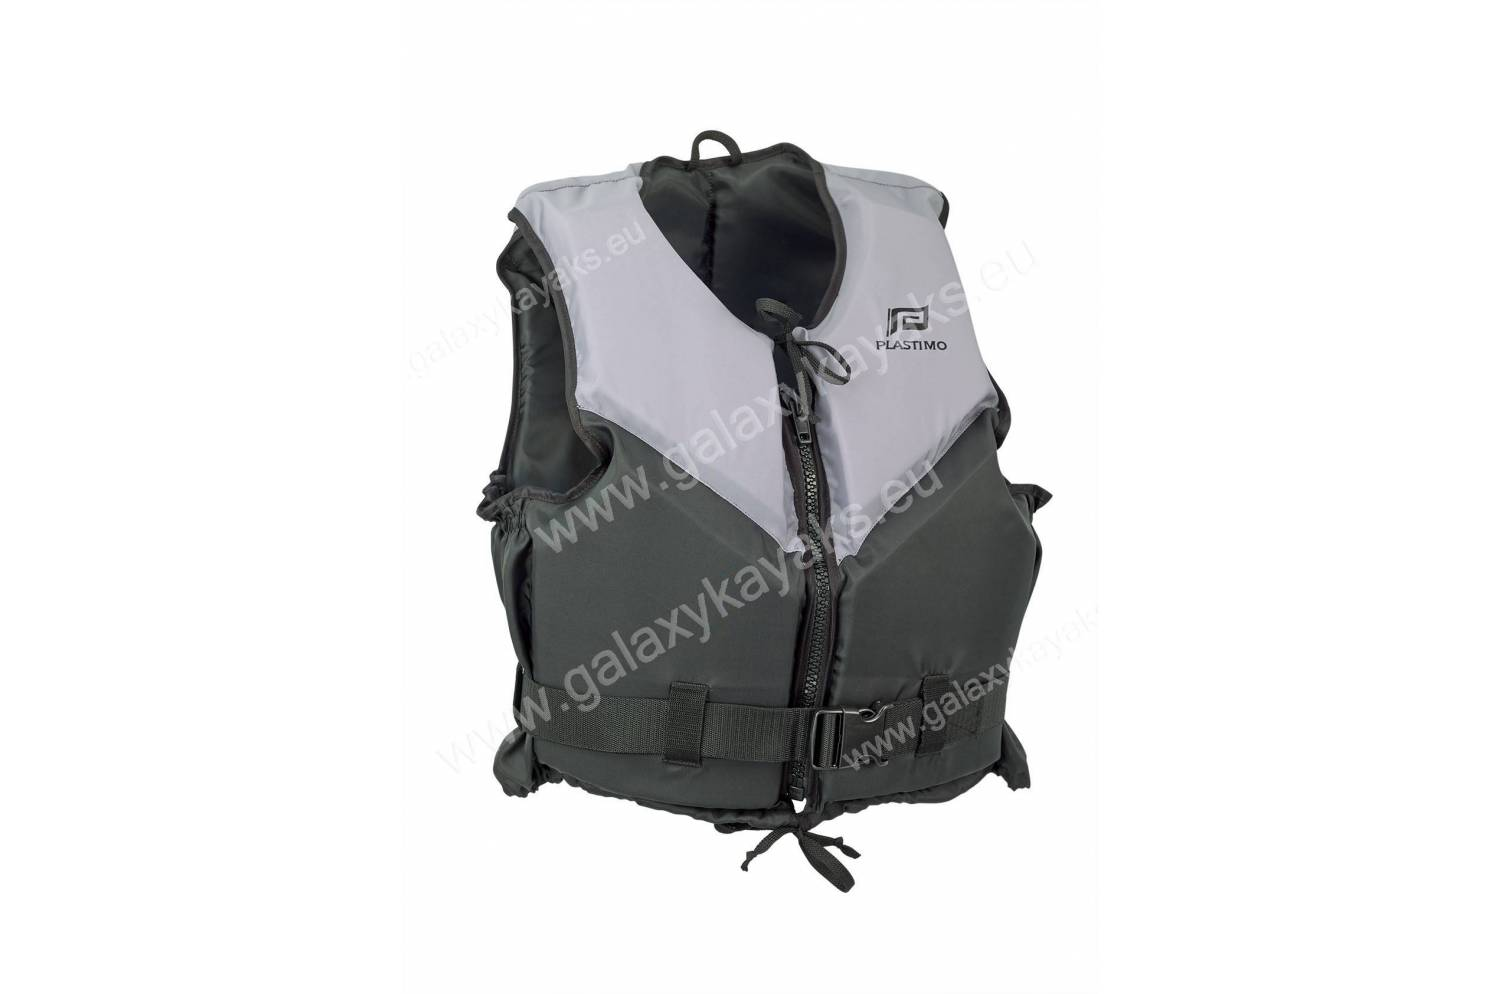 gilet de sauvetage lifejacket trophy 50n plastimo. Black Bedroom Furniture Sets. Home Design Ideas